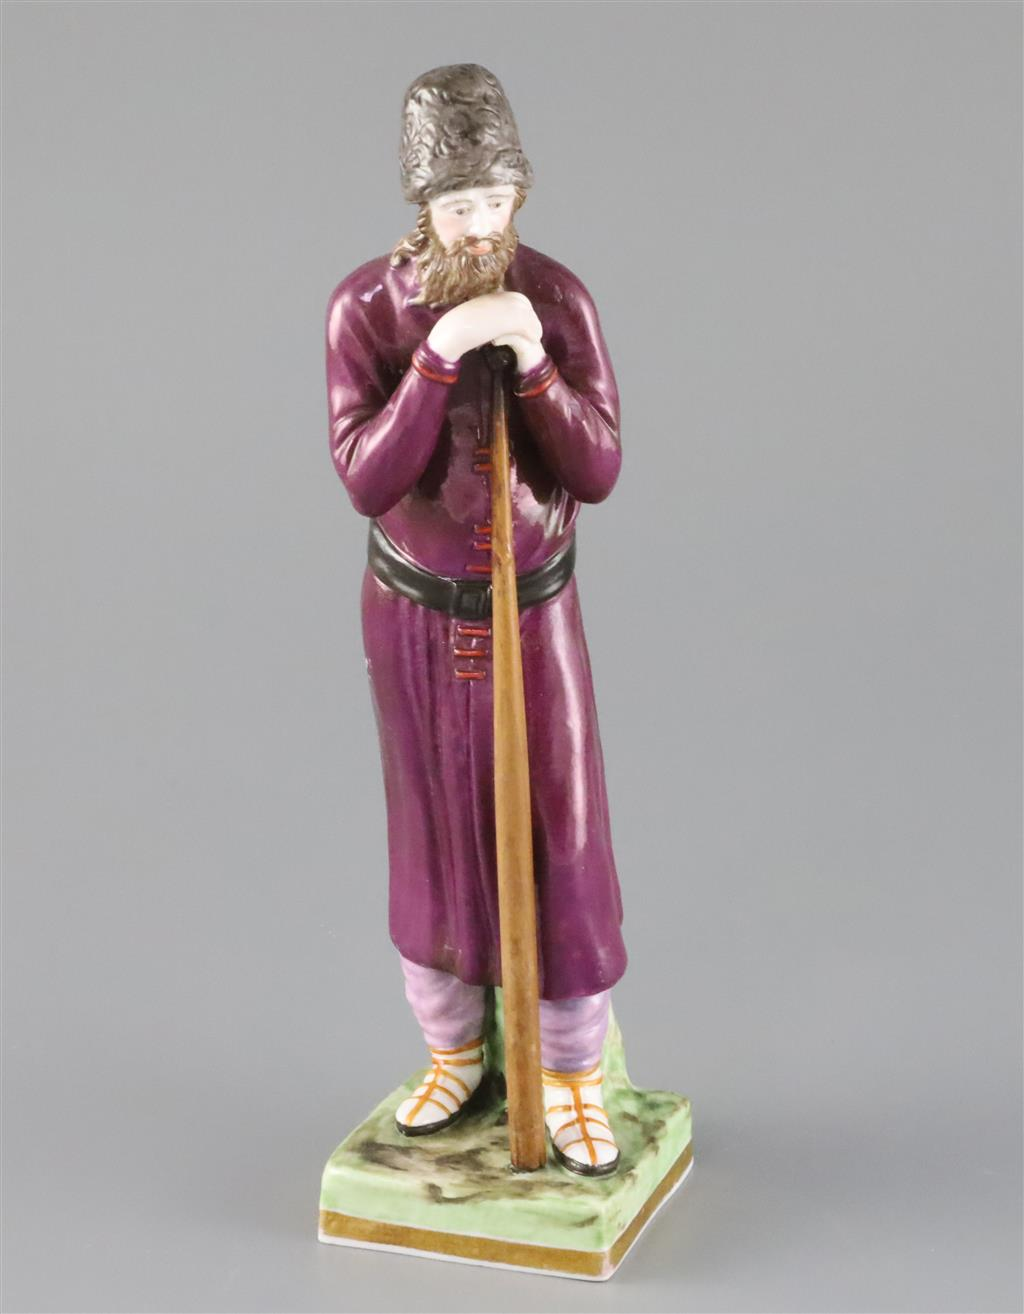 A Russian Gardner porcelain figure of a man holding a staff, mid 19th century, H.21.4cm, loss to left hand and replacement staff